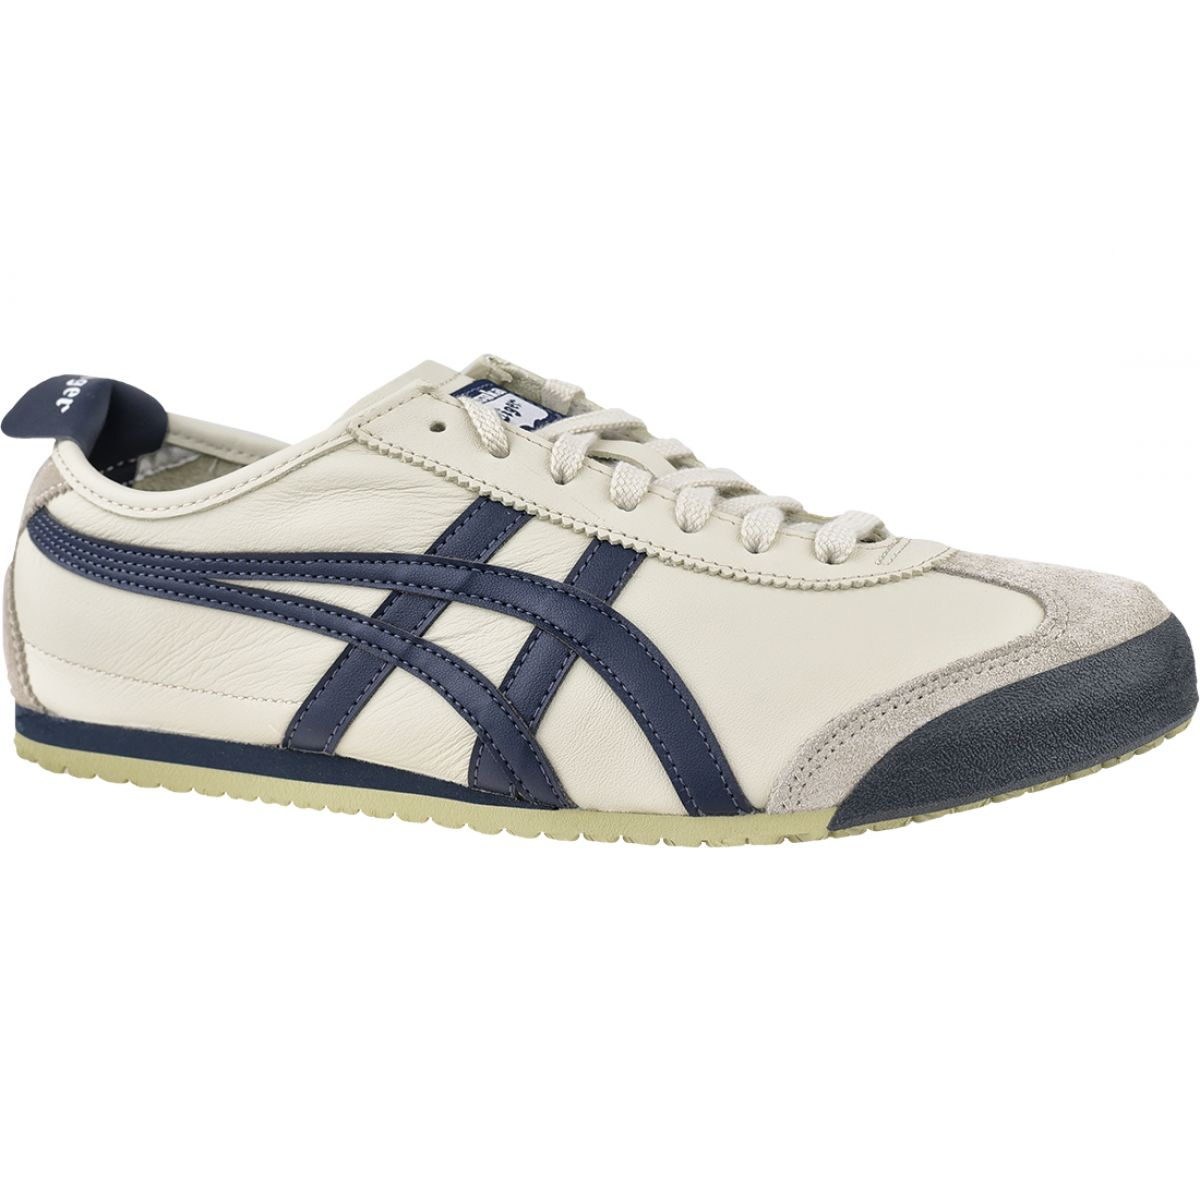 Onitsuka Tiger Mexico 66 Beige